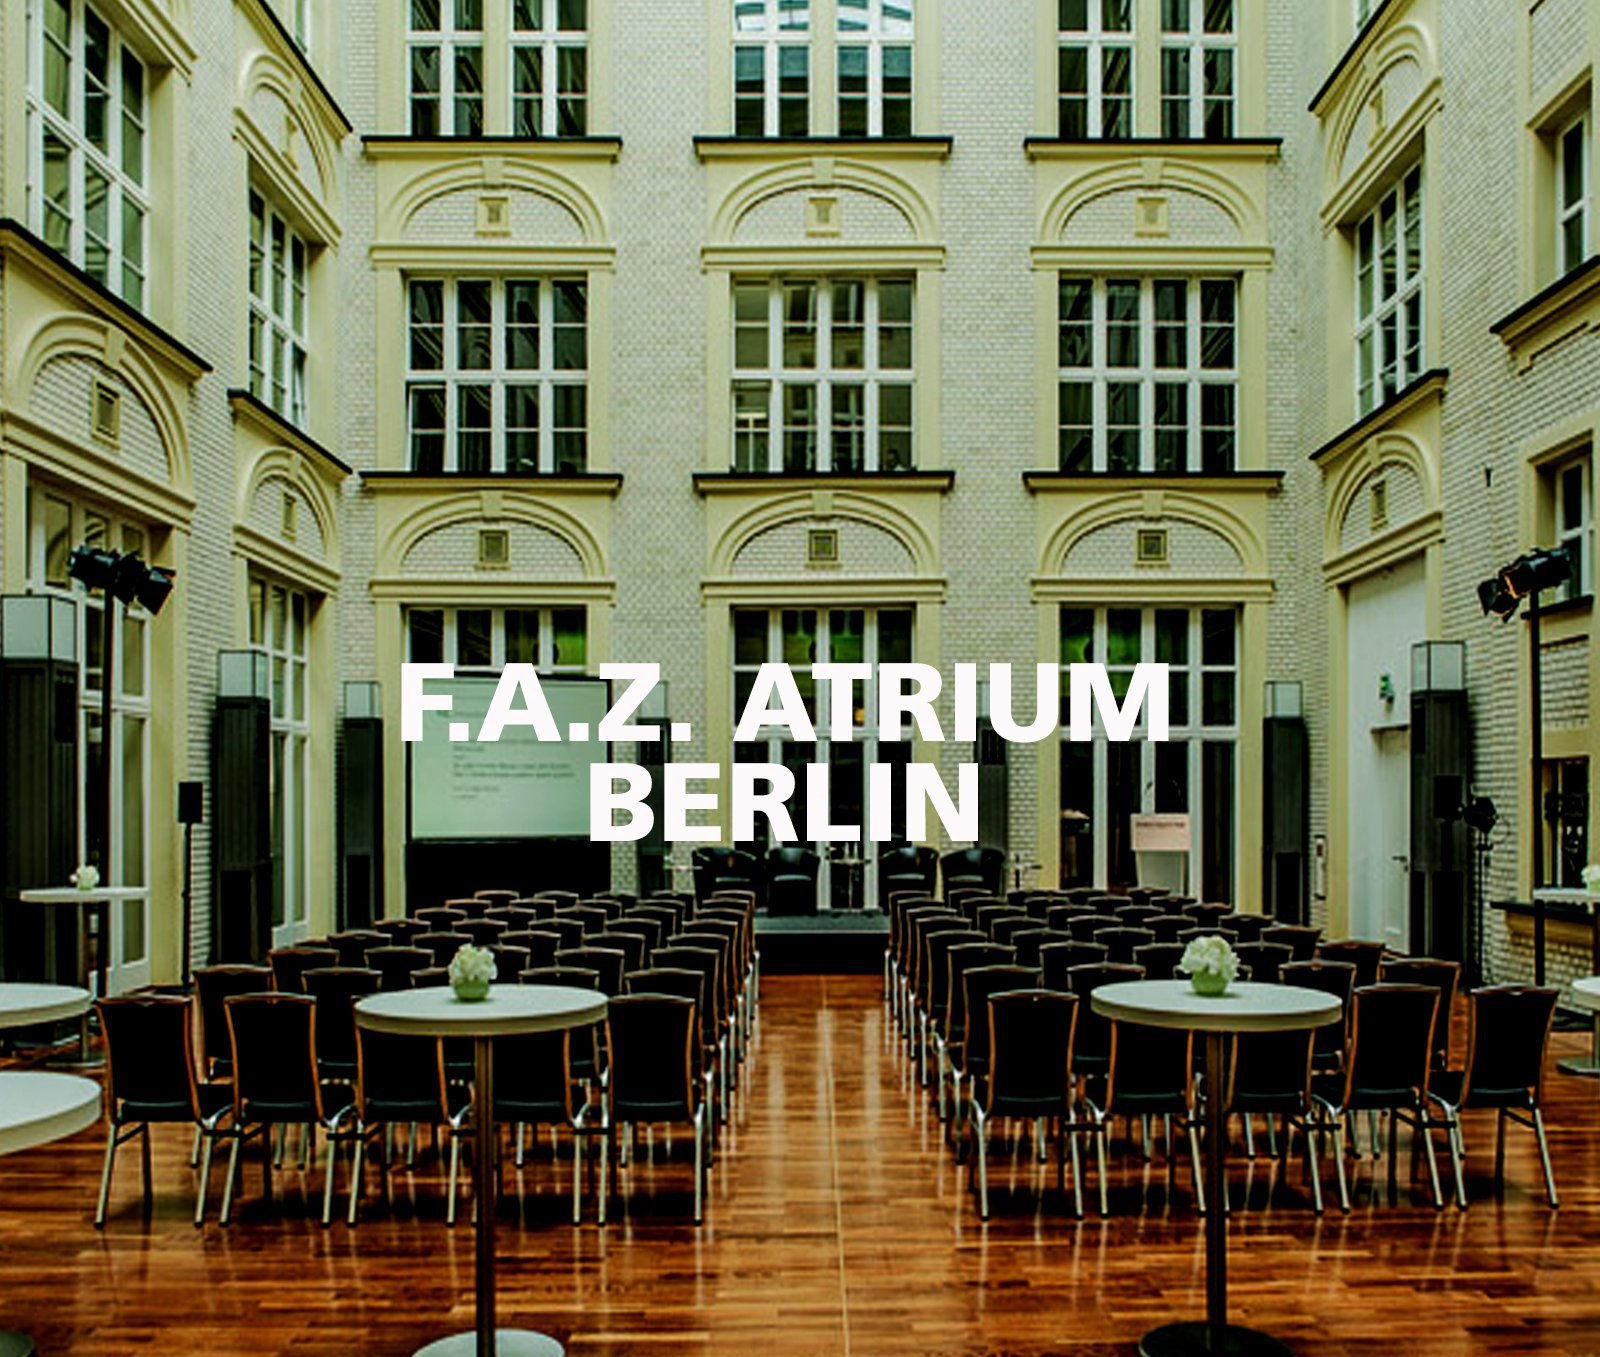 FLORIS Partner Location FAZ Atrium Berlin